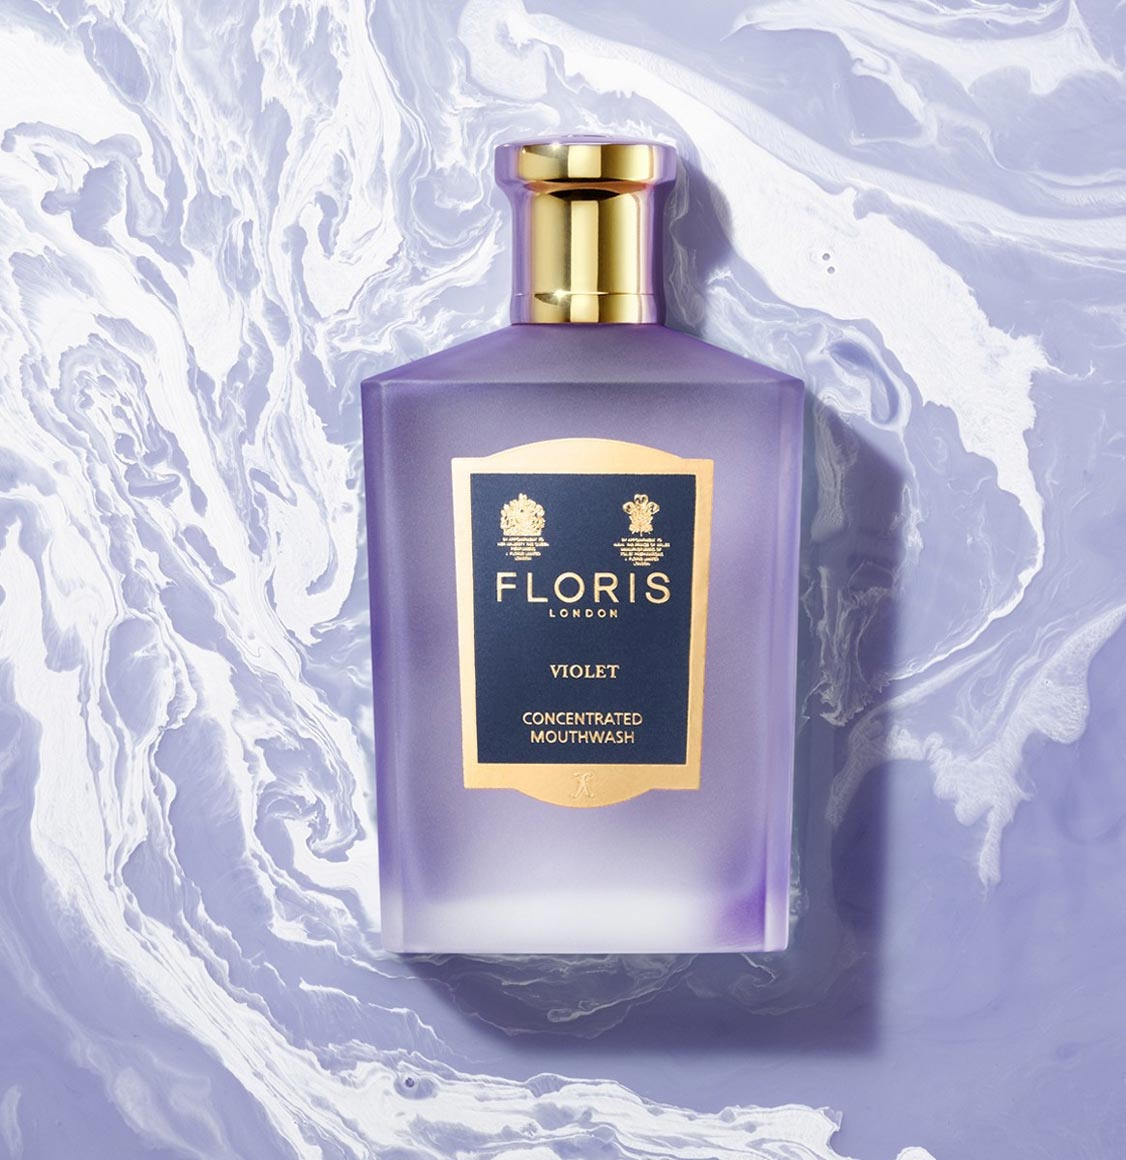 Floris London Violet Concentrated Mouthwash 100ml